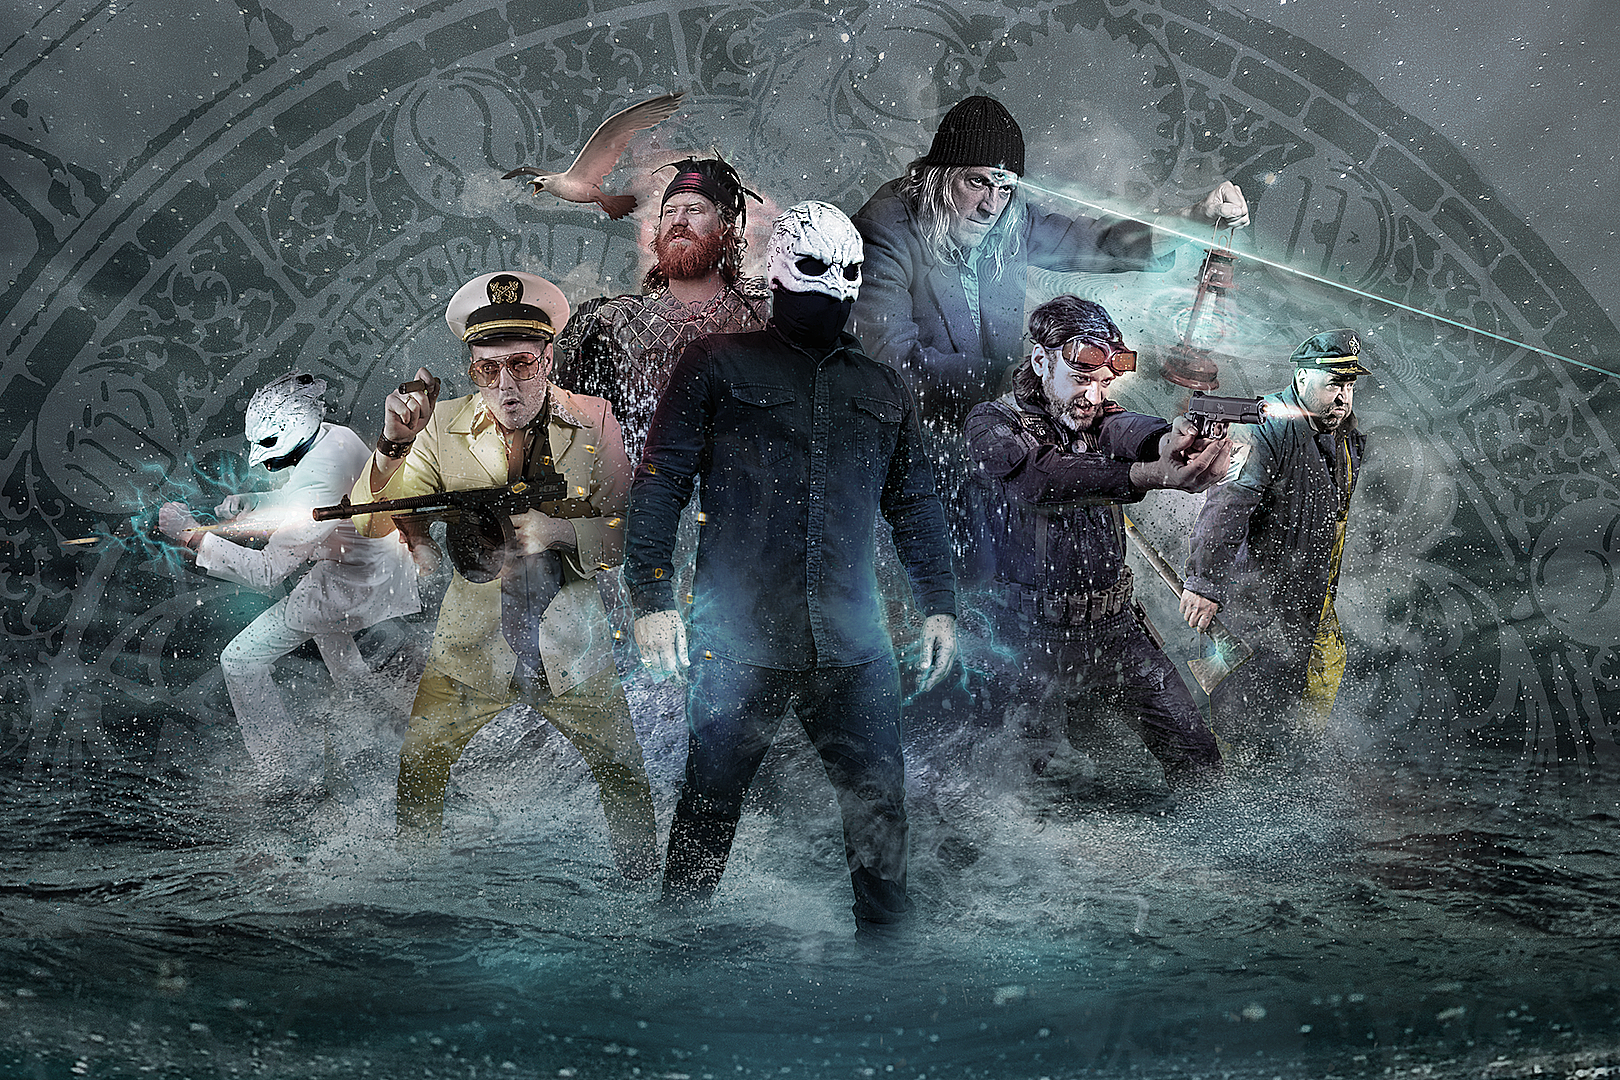 Legend of the Seagullmen Take to the High Seas on 'The Fogger'